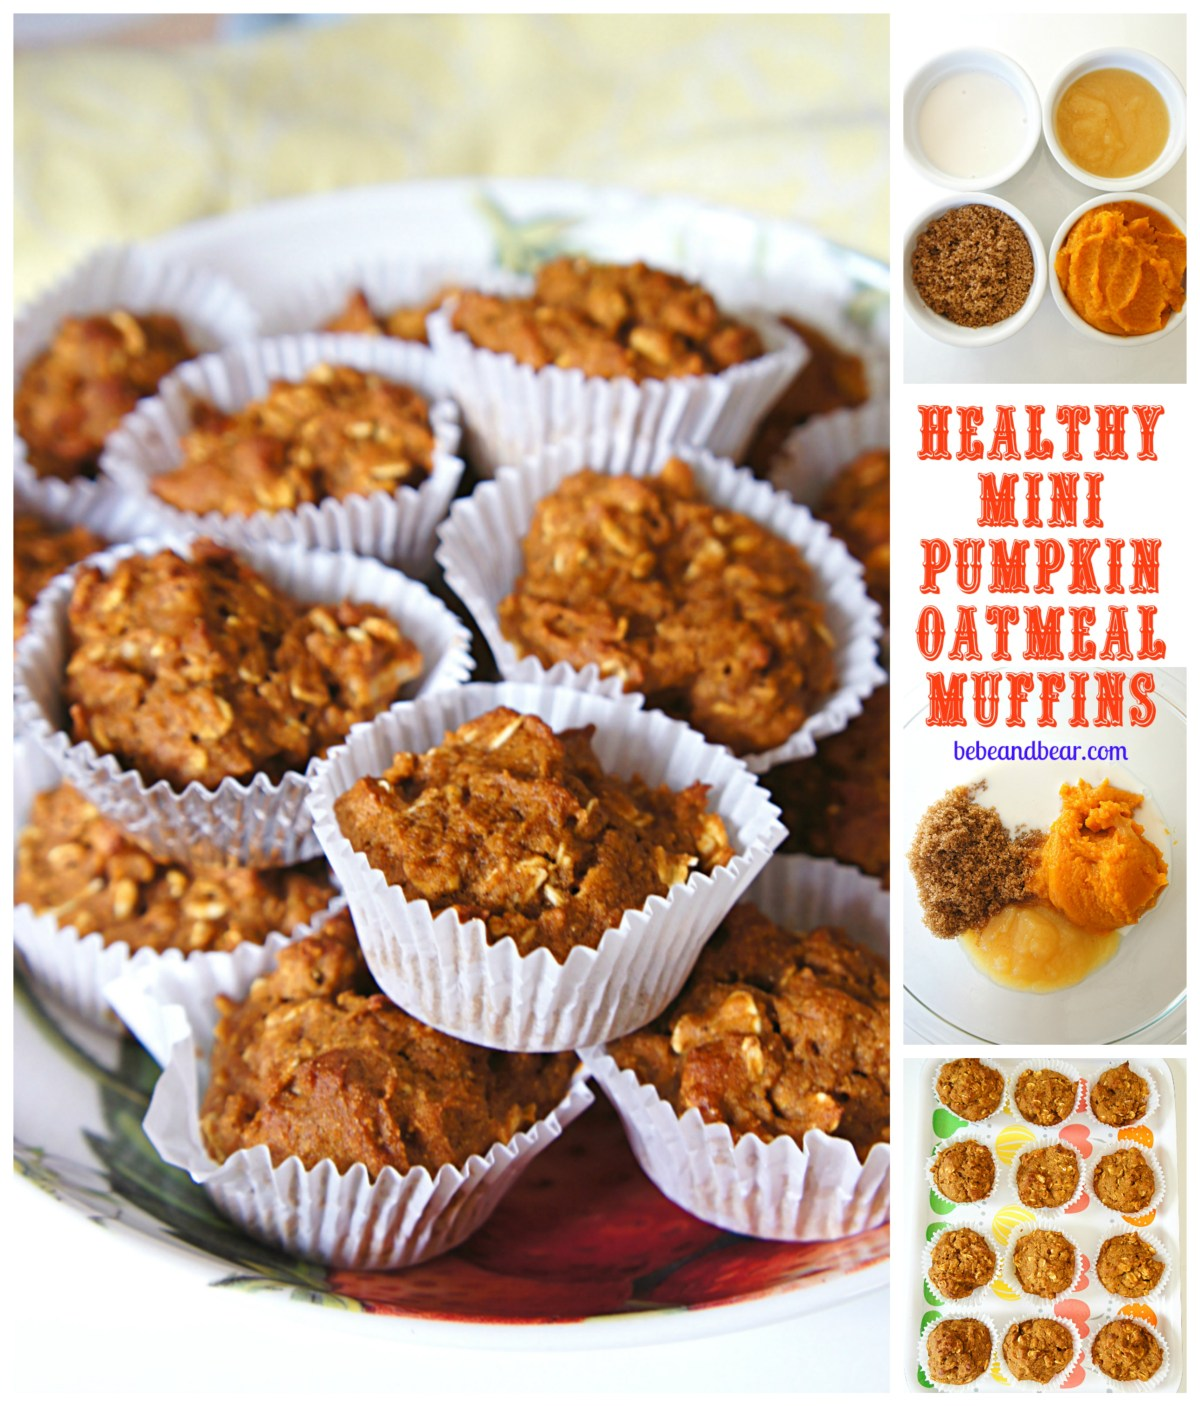 Mini Pumpkin Oatmeal Muffins